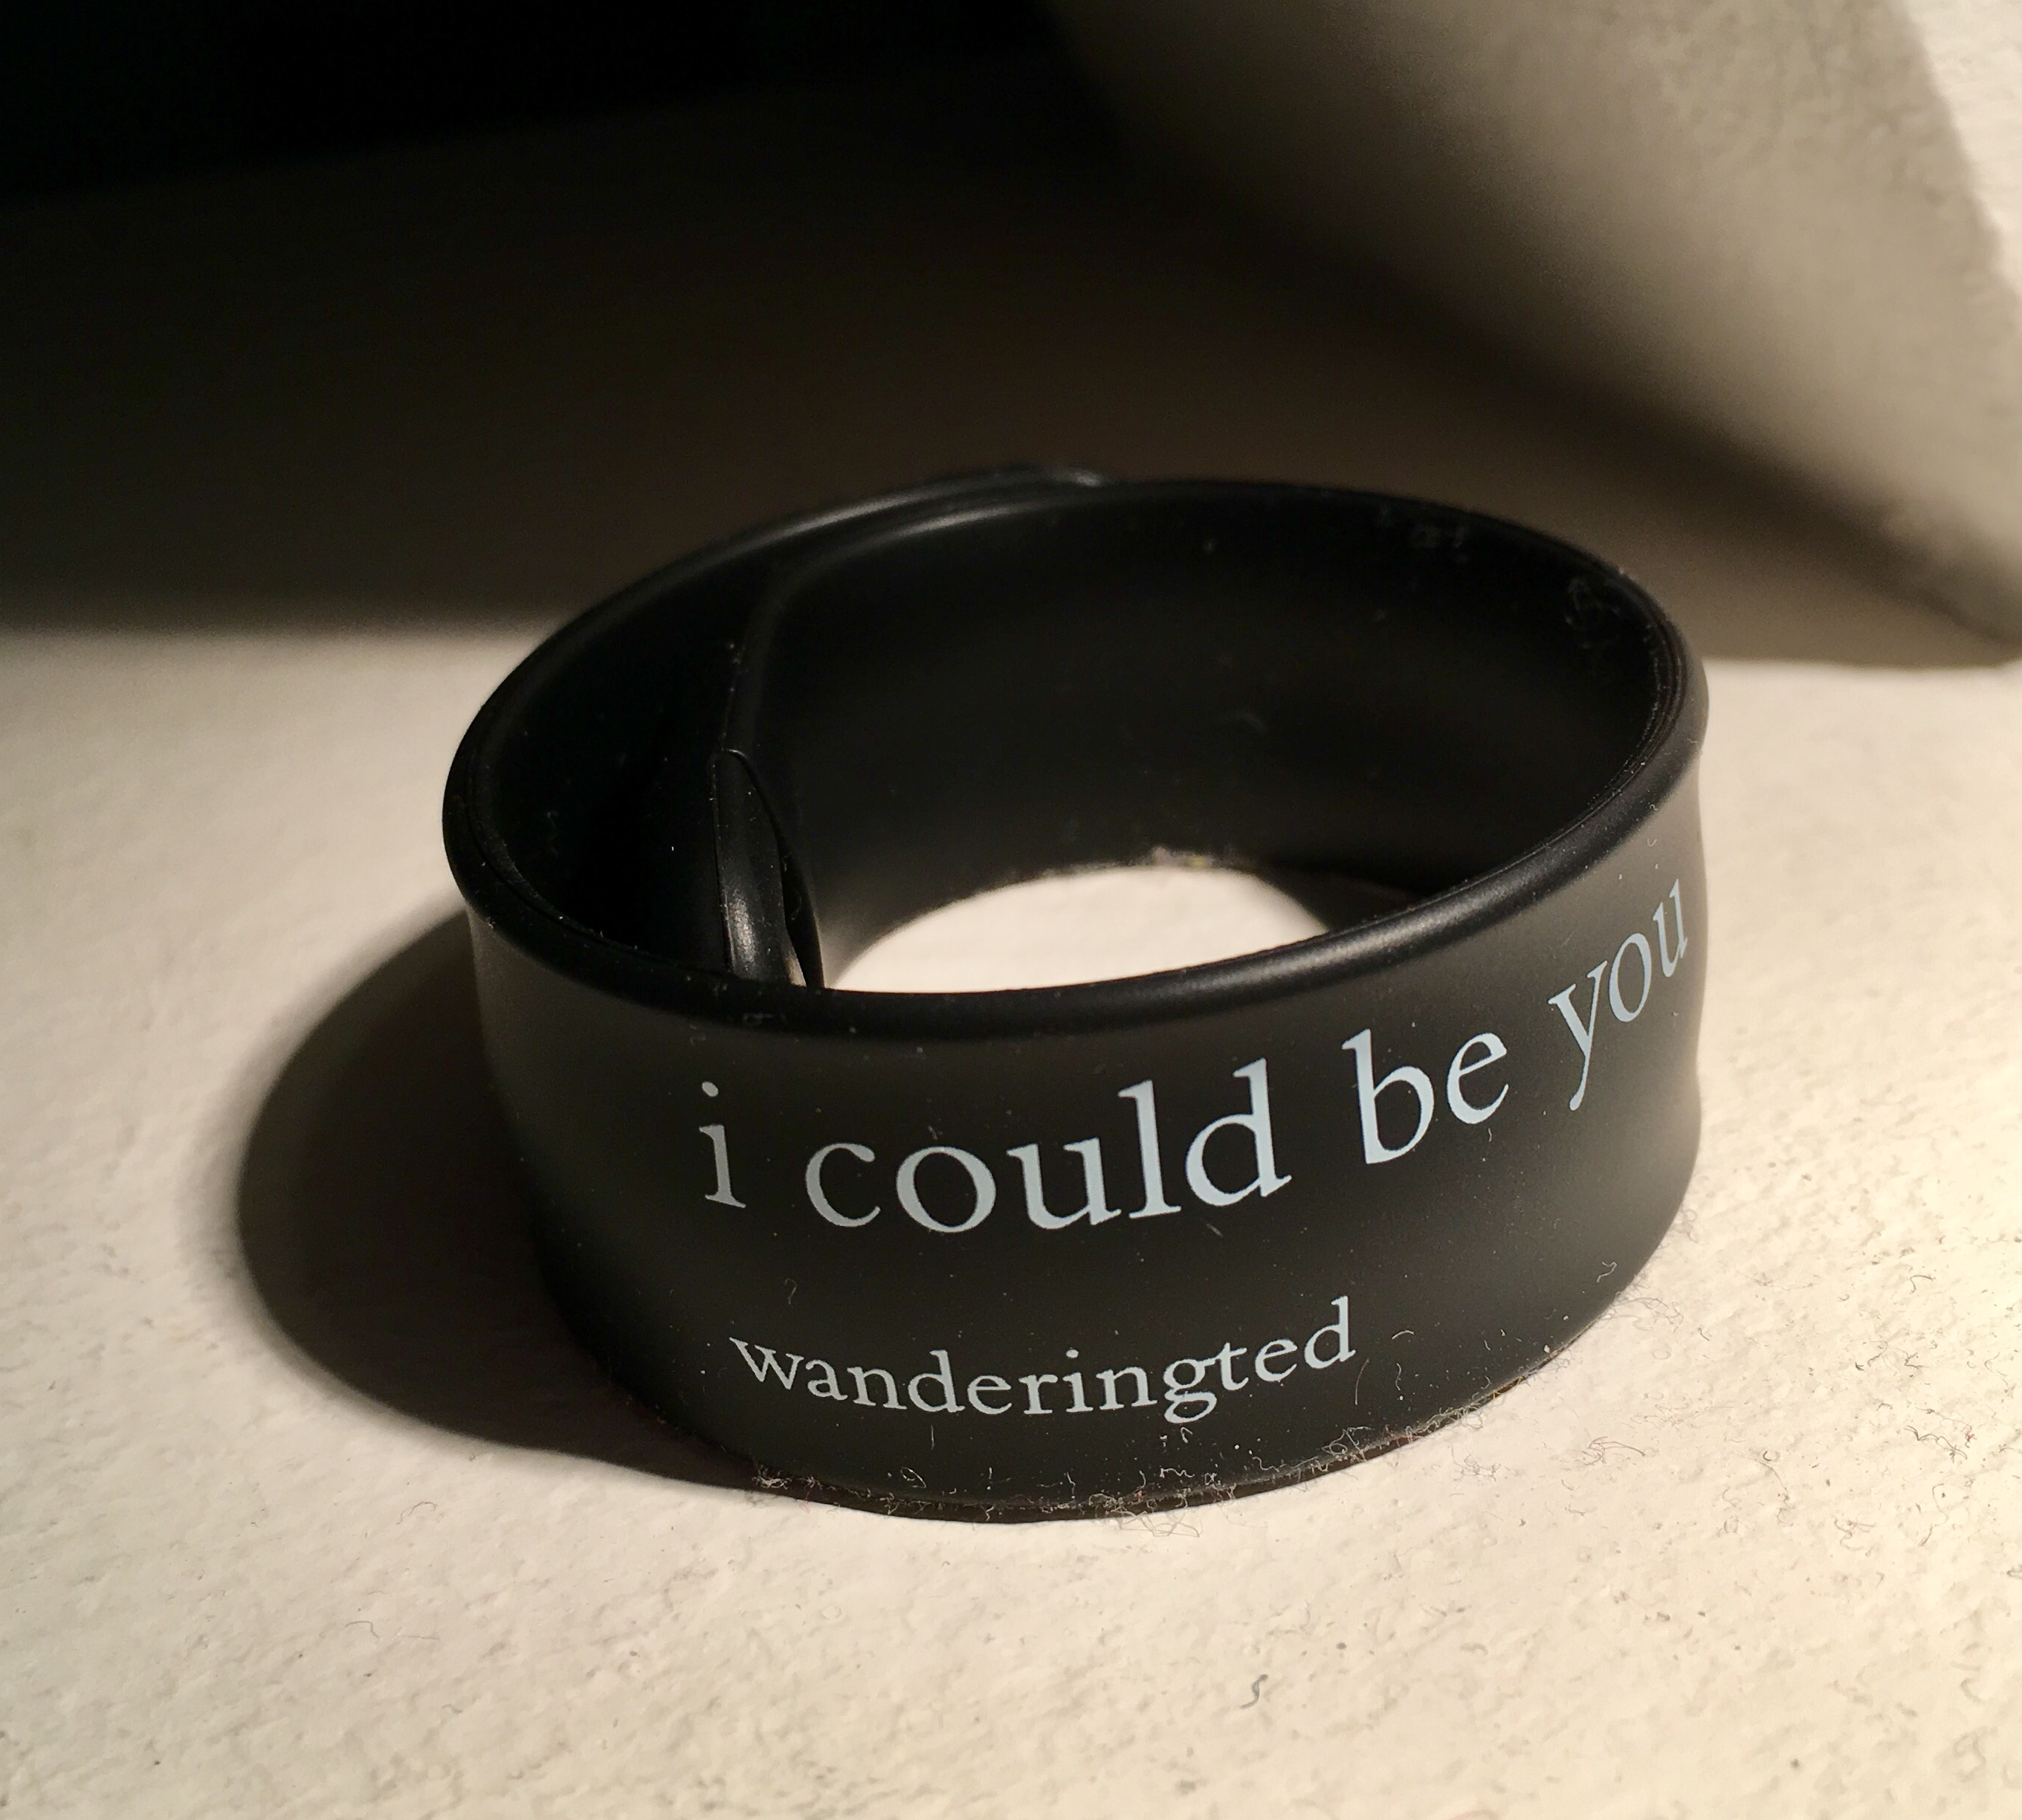 Slap Bracelet Wanderingted